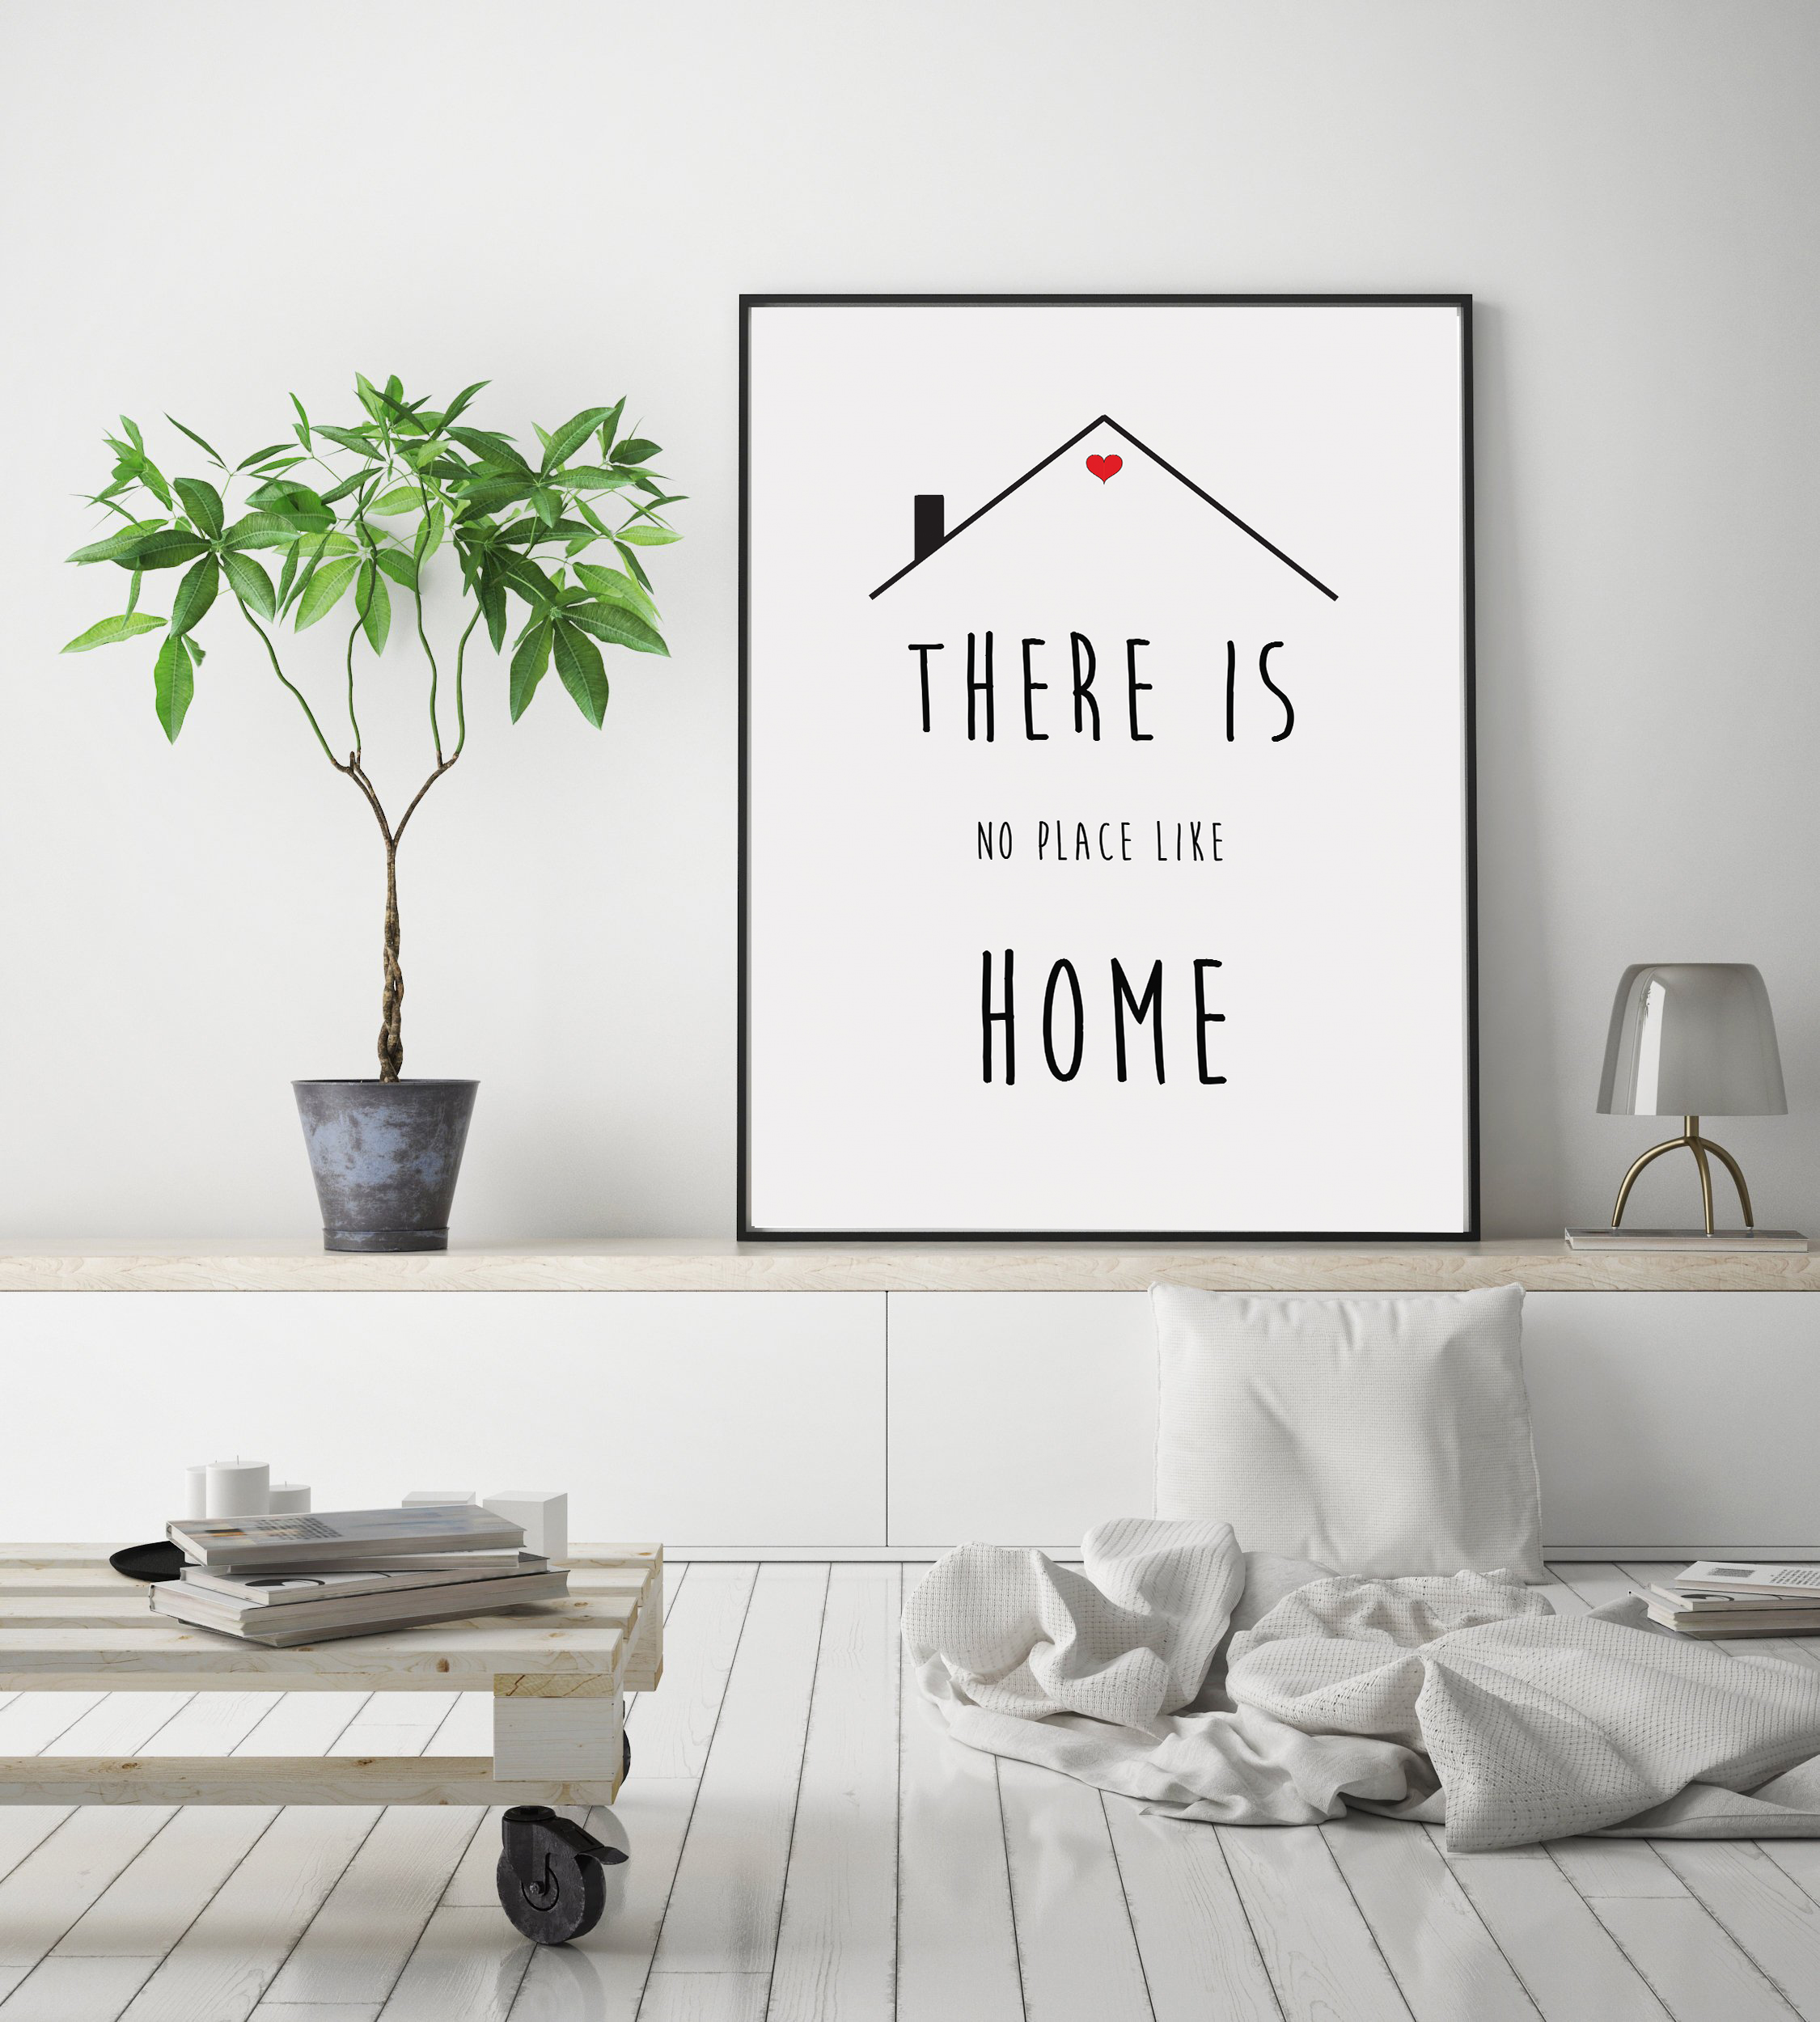 Minimalist Wall Art Quotes, Printable Home Quotes Poster example image 5